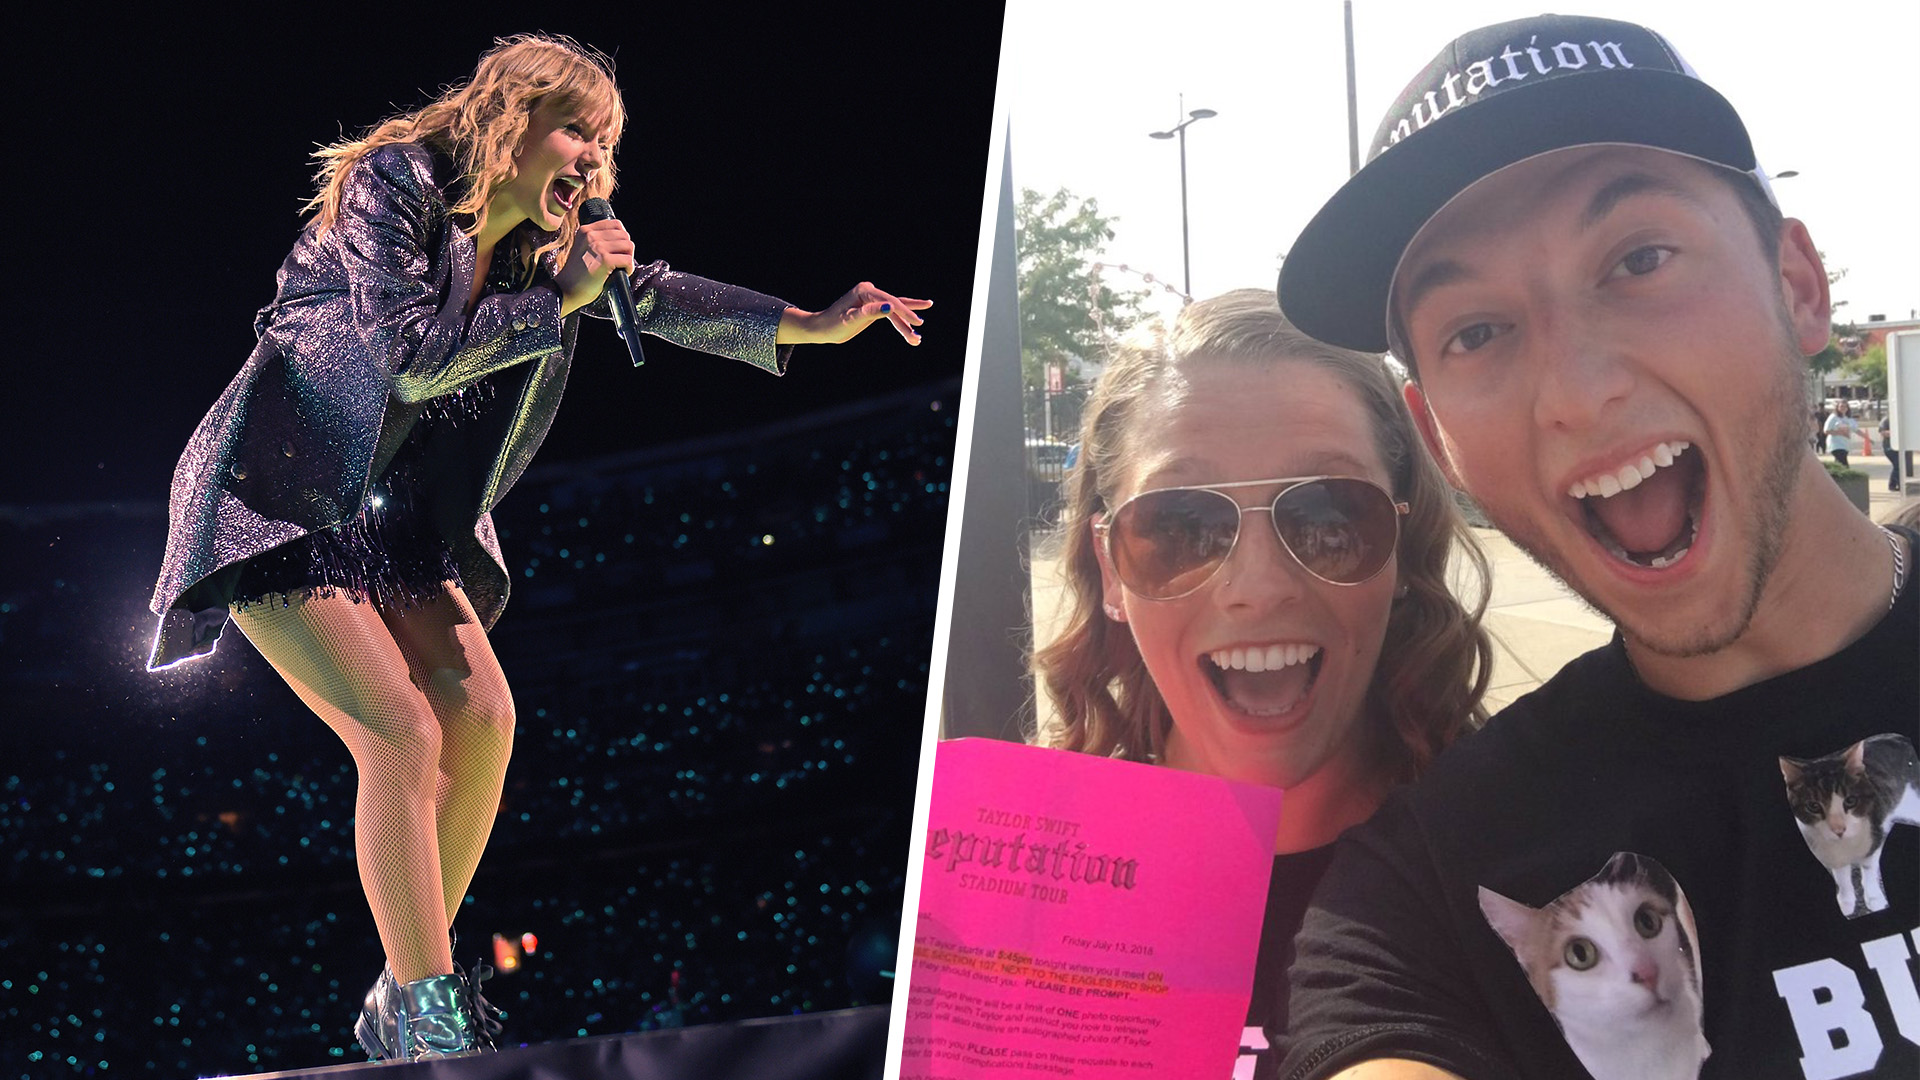 This couple got engaged in front of taylor swift and her this couple got engaged in front of taylor swift and her reaction was amazing m4hsunfo